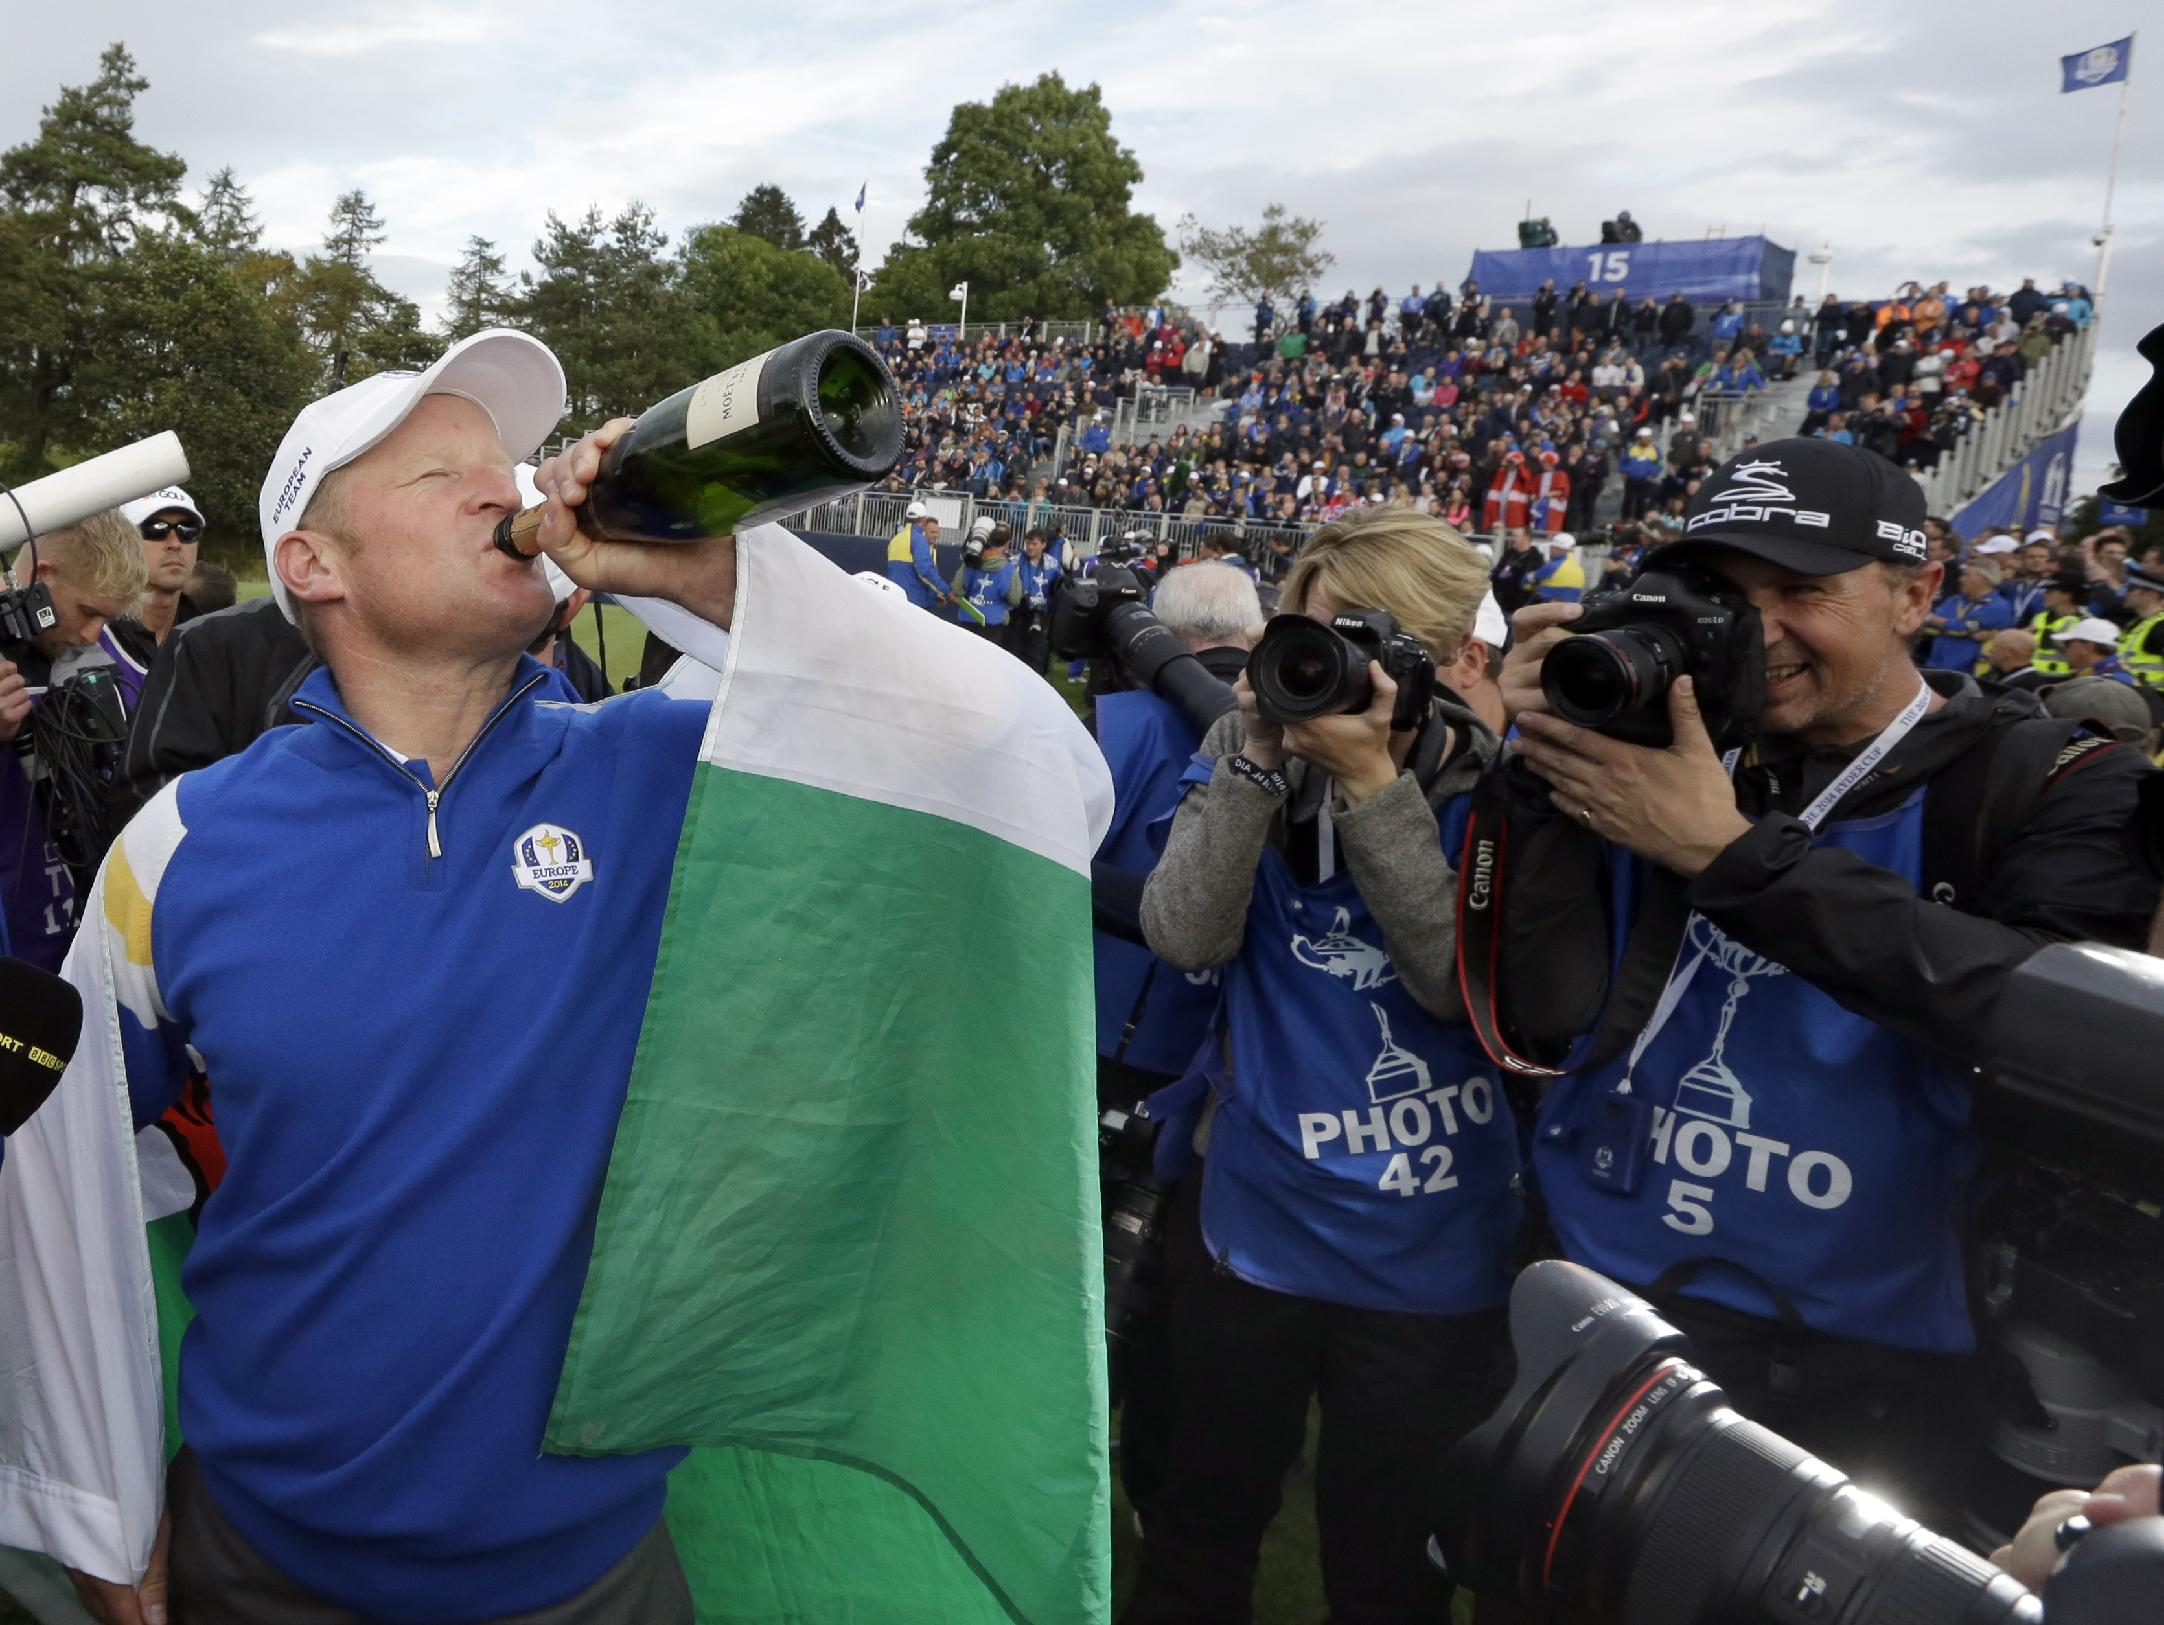 Europe's Jamie Donaldson drinks from a champagne bottle to celebrate his singles match to win the 2014 Ryder Cup golf tournament at Gleneagles, Scotland, Sunday, Sept. 28, 2014. (AP Photo/Matt Dunham)